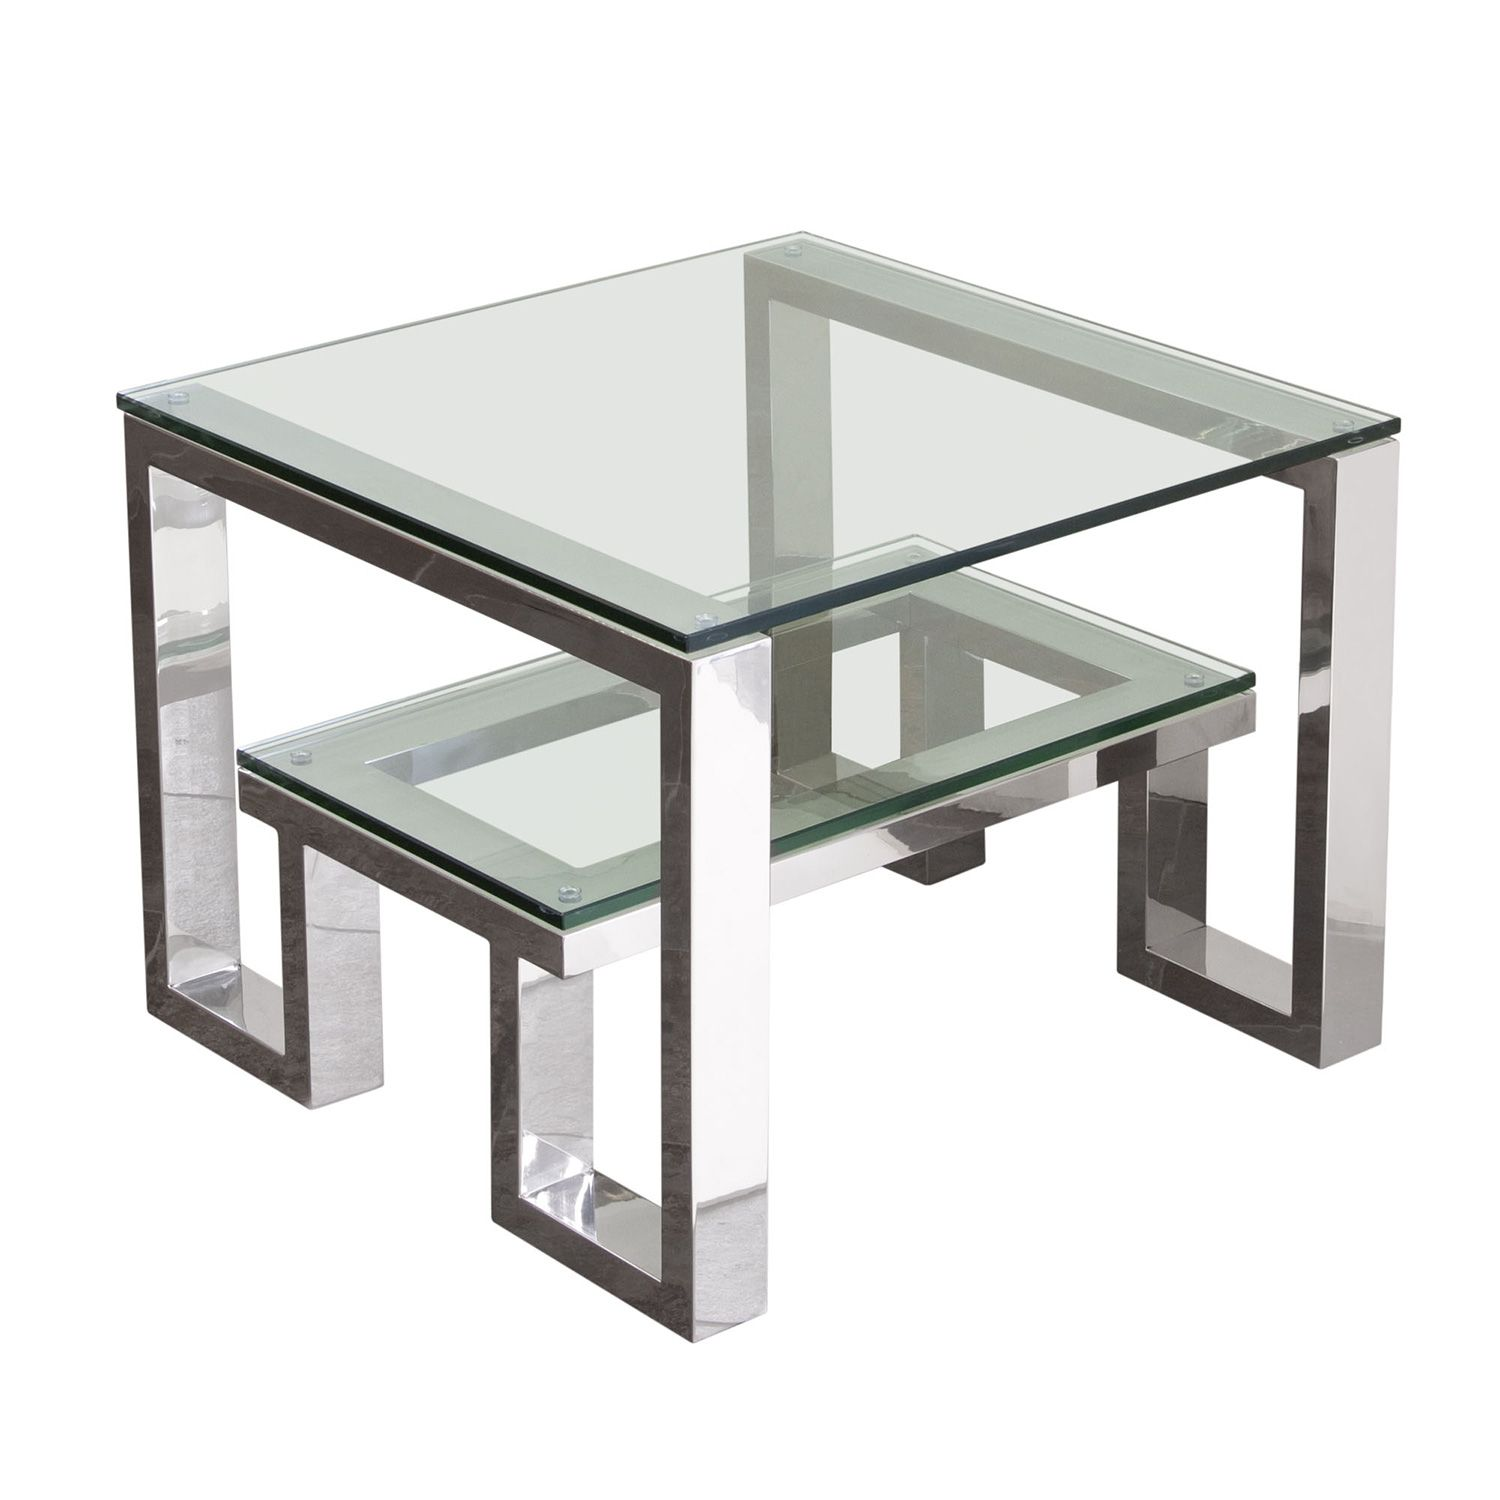 Diamond Sofa Carlsbadet Carlsbad End Table Clear Glass Top Shelf Stainless Steel Frame In 2021 Stainless Steel Furniture Stainless Steel Coffee Table Stainless Steel Table [ 1500 x 1500 Pixel ]